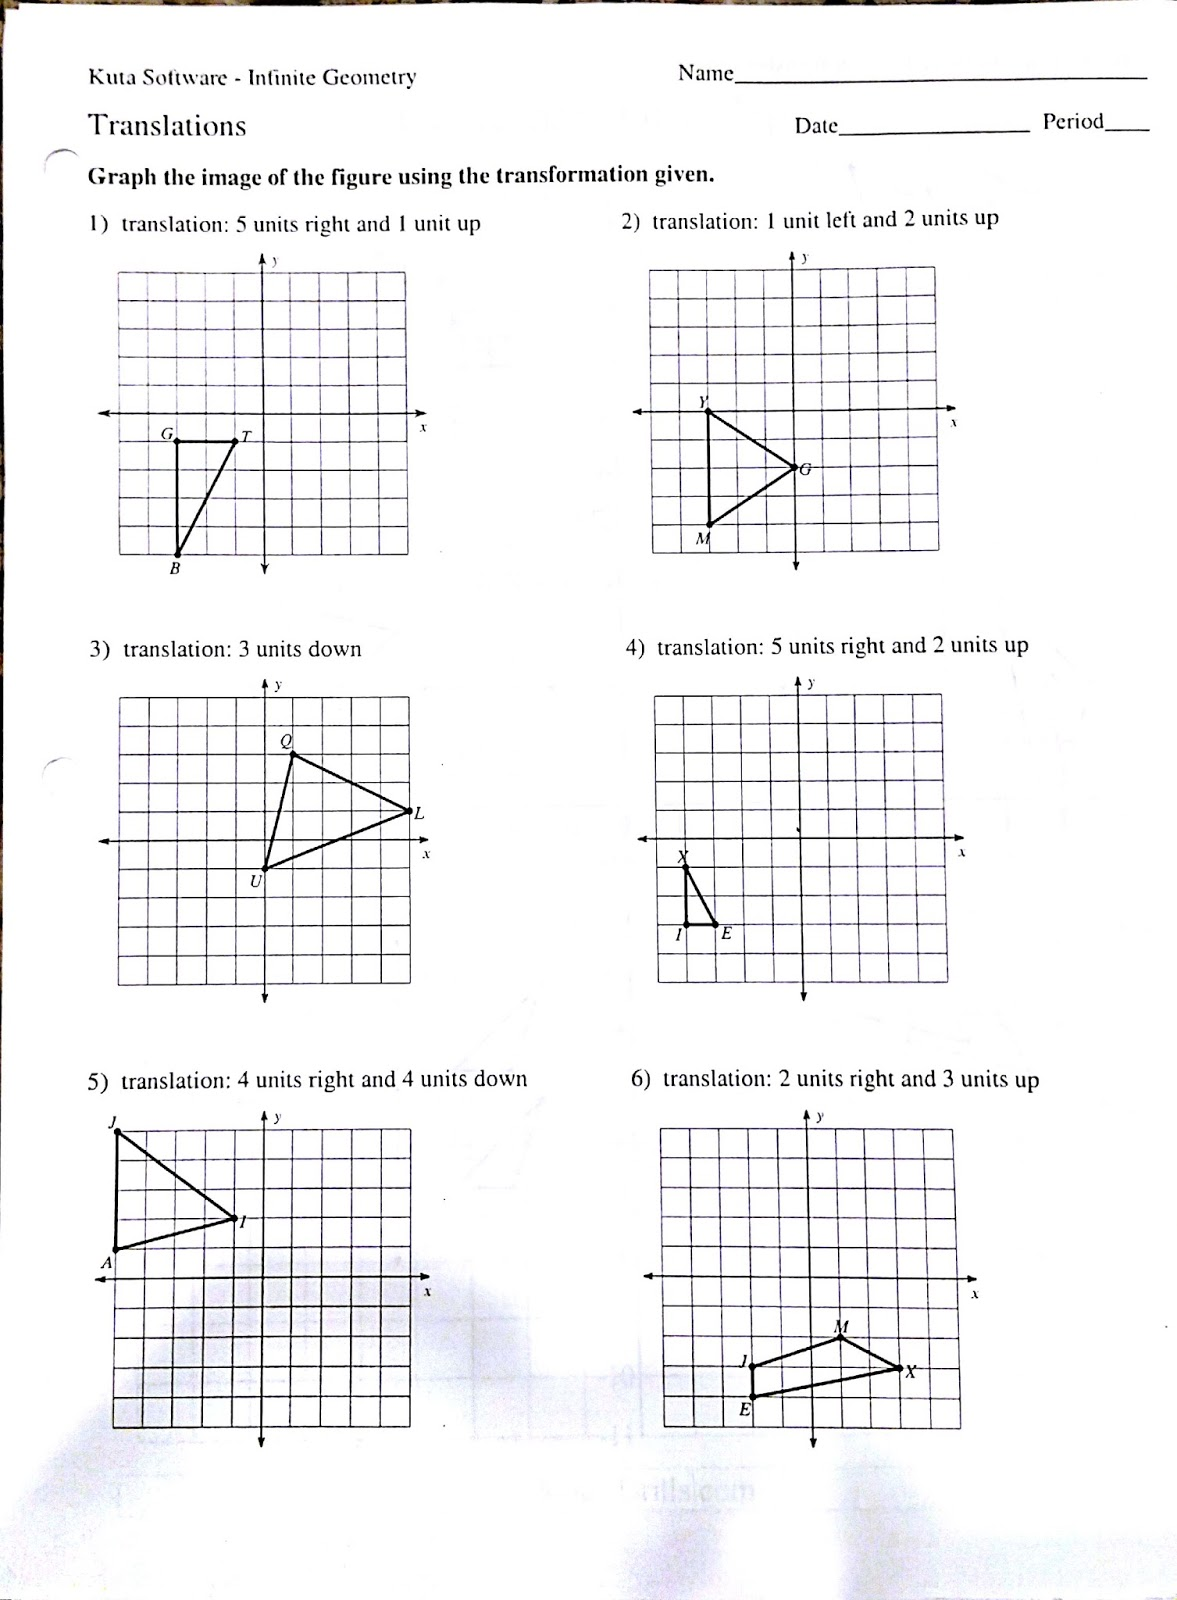 Rotation Maths Worksheet printables geometry transformation – Translation Maths Worksheet